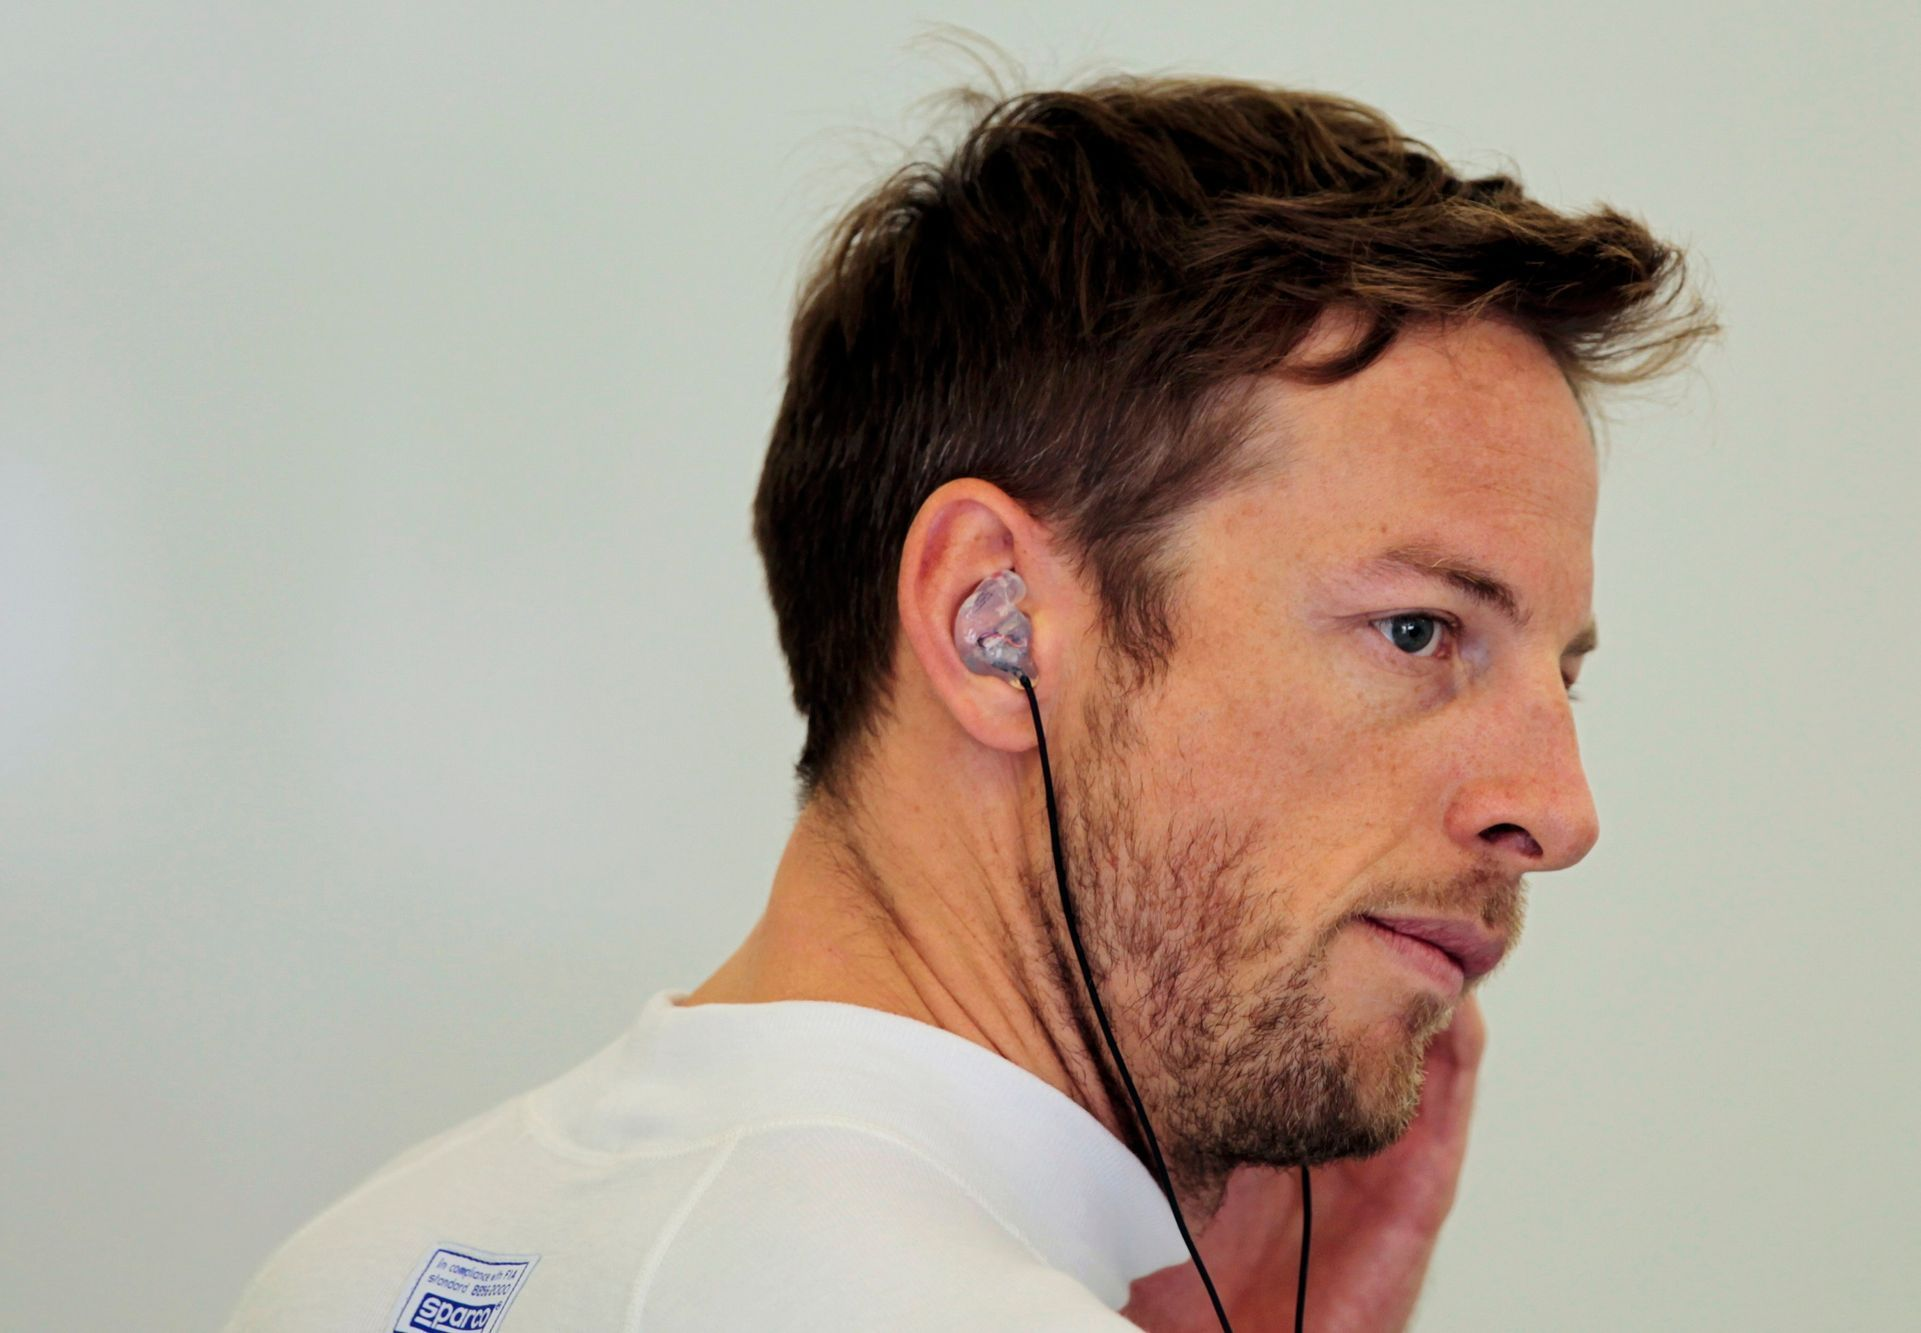 McLaren Formula One driver Jenson Button of Britain looks on during the first practice session of the Bahrain F1 Grand Prix at the Bahrain International Circuit (BIC) in Sakhir